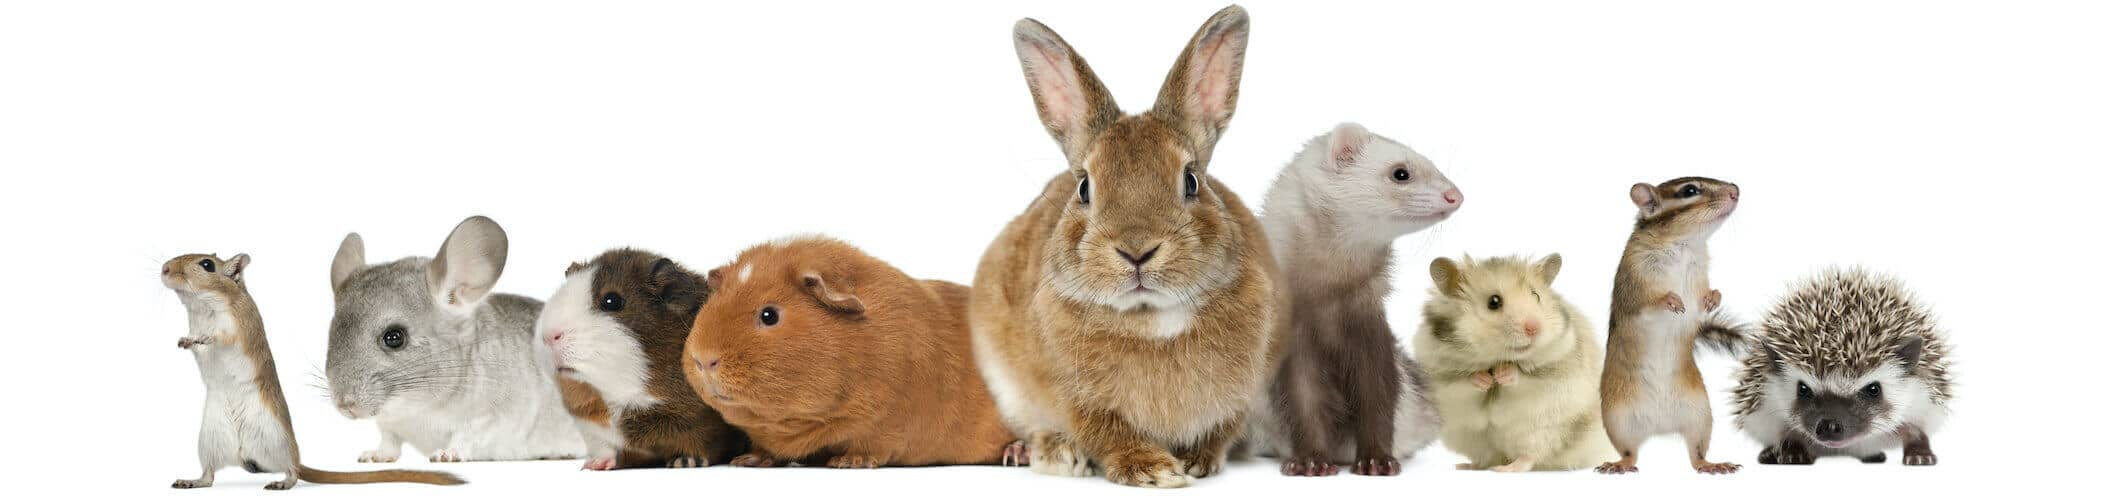 Rodents and Rabbits